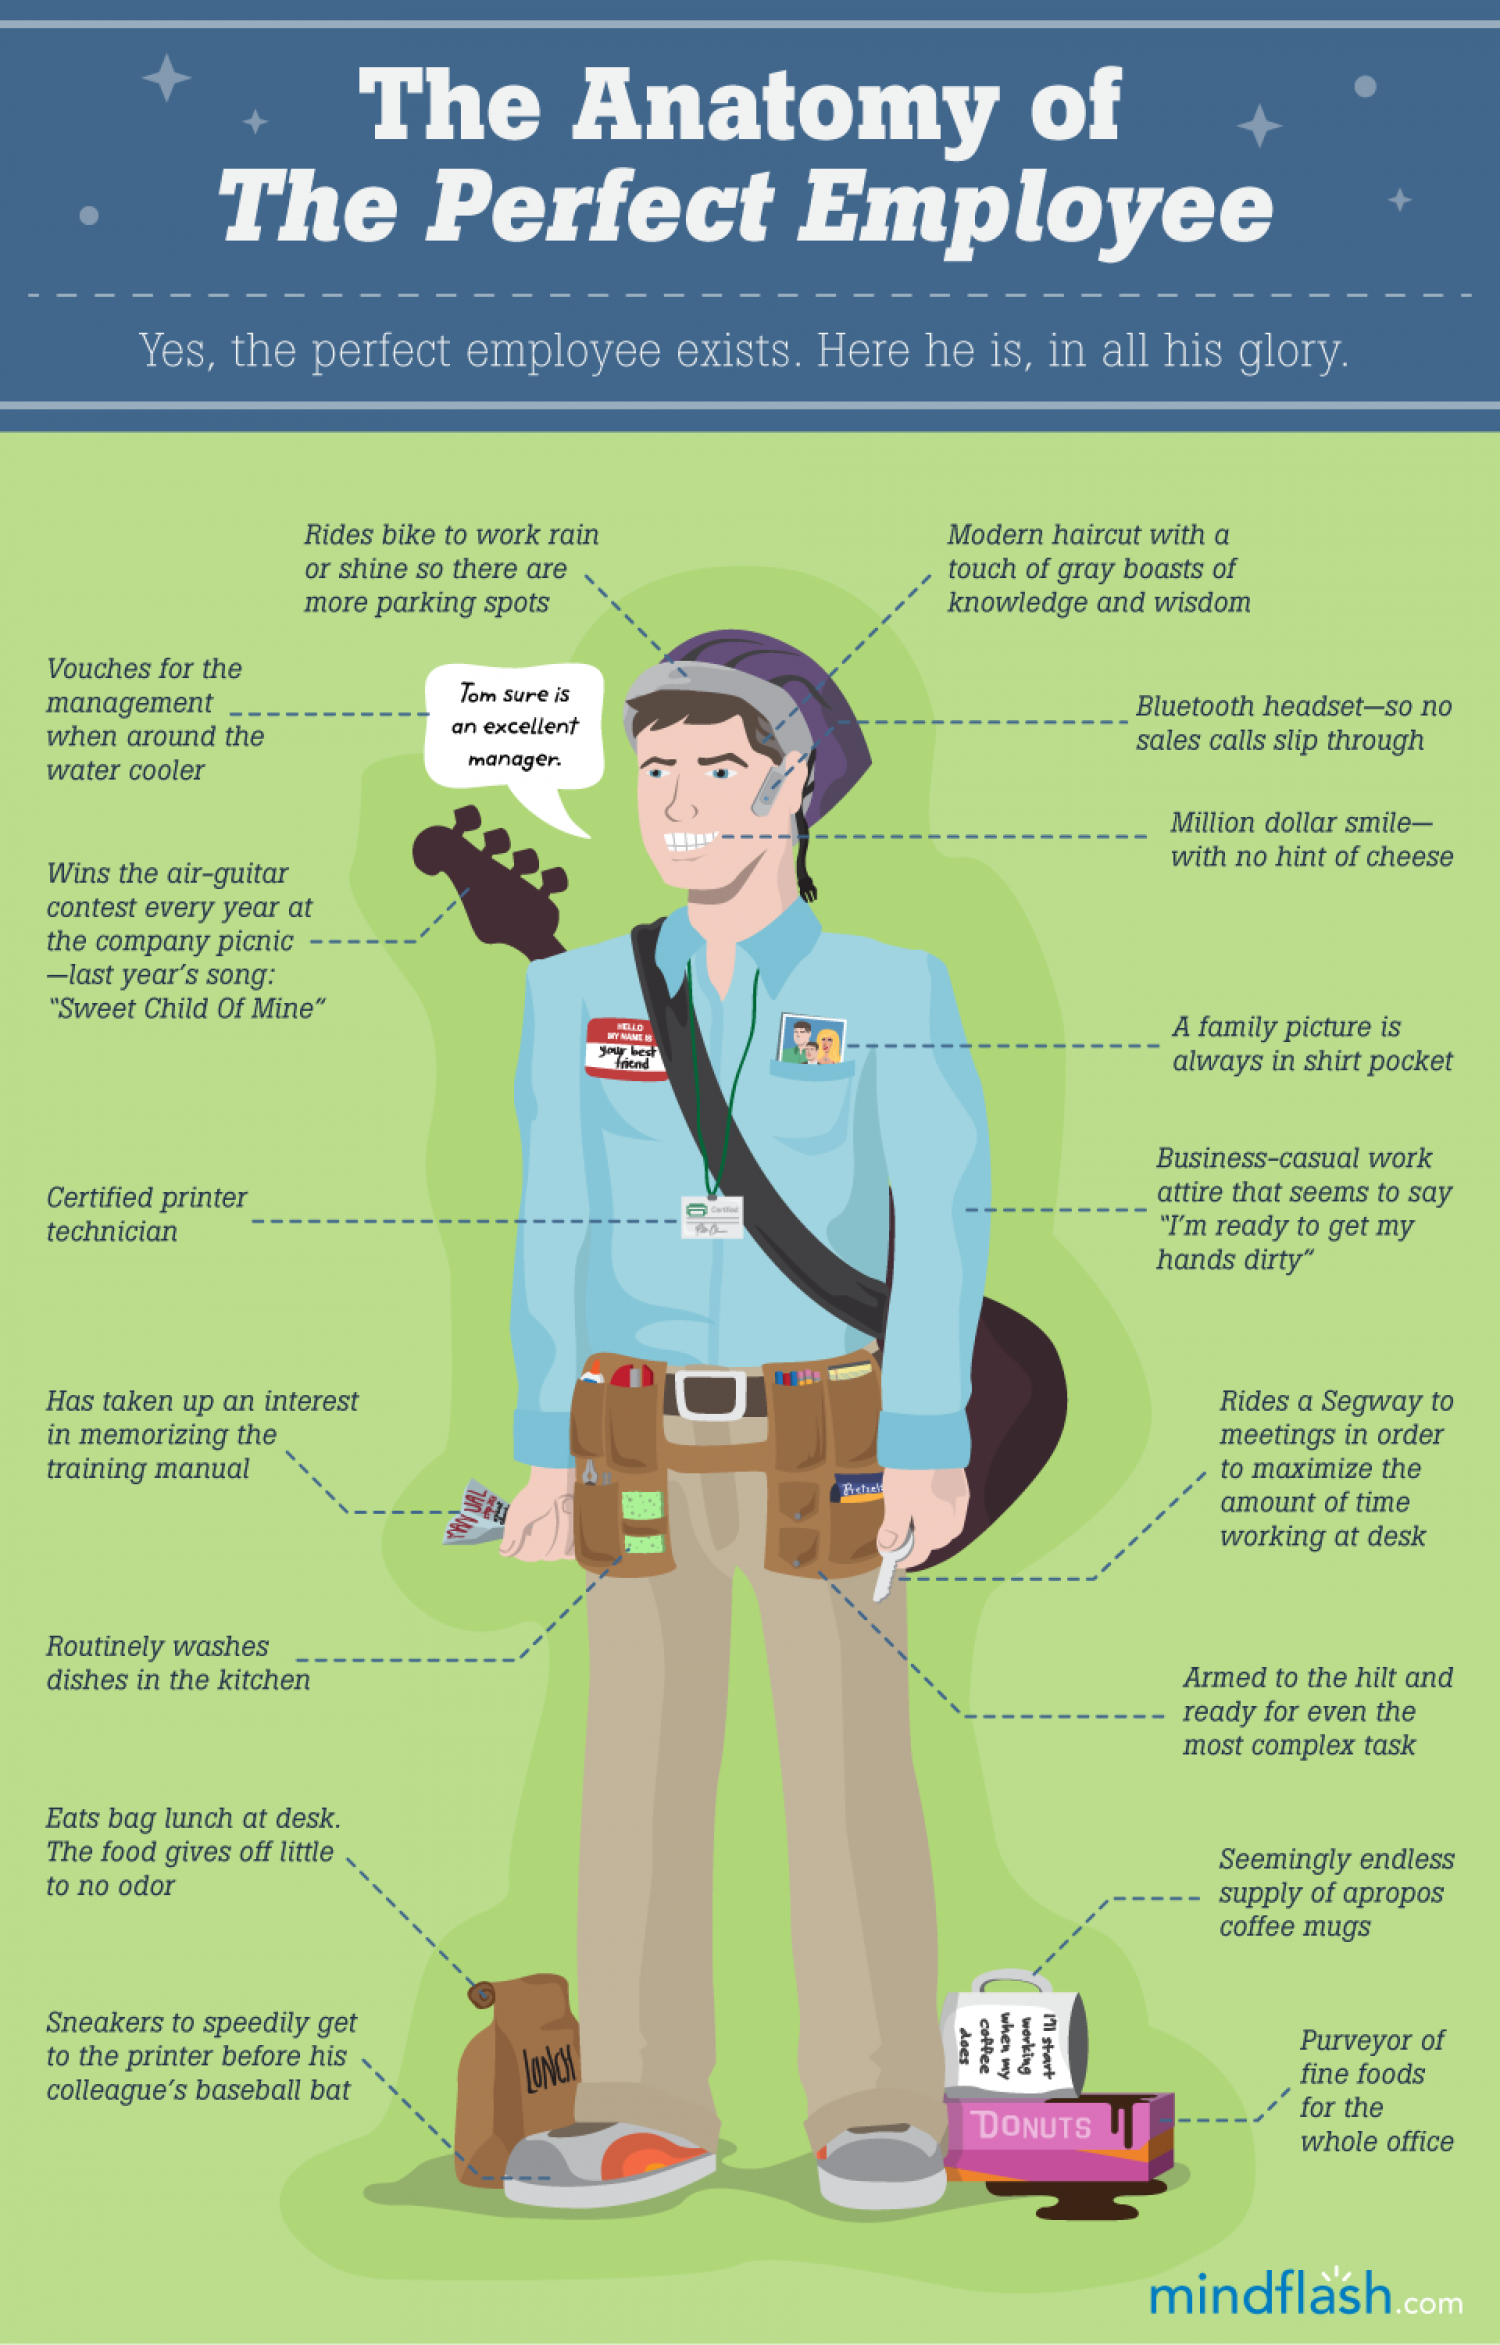 Anatomy Of The Perfect Employee Infographic